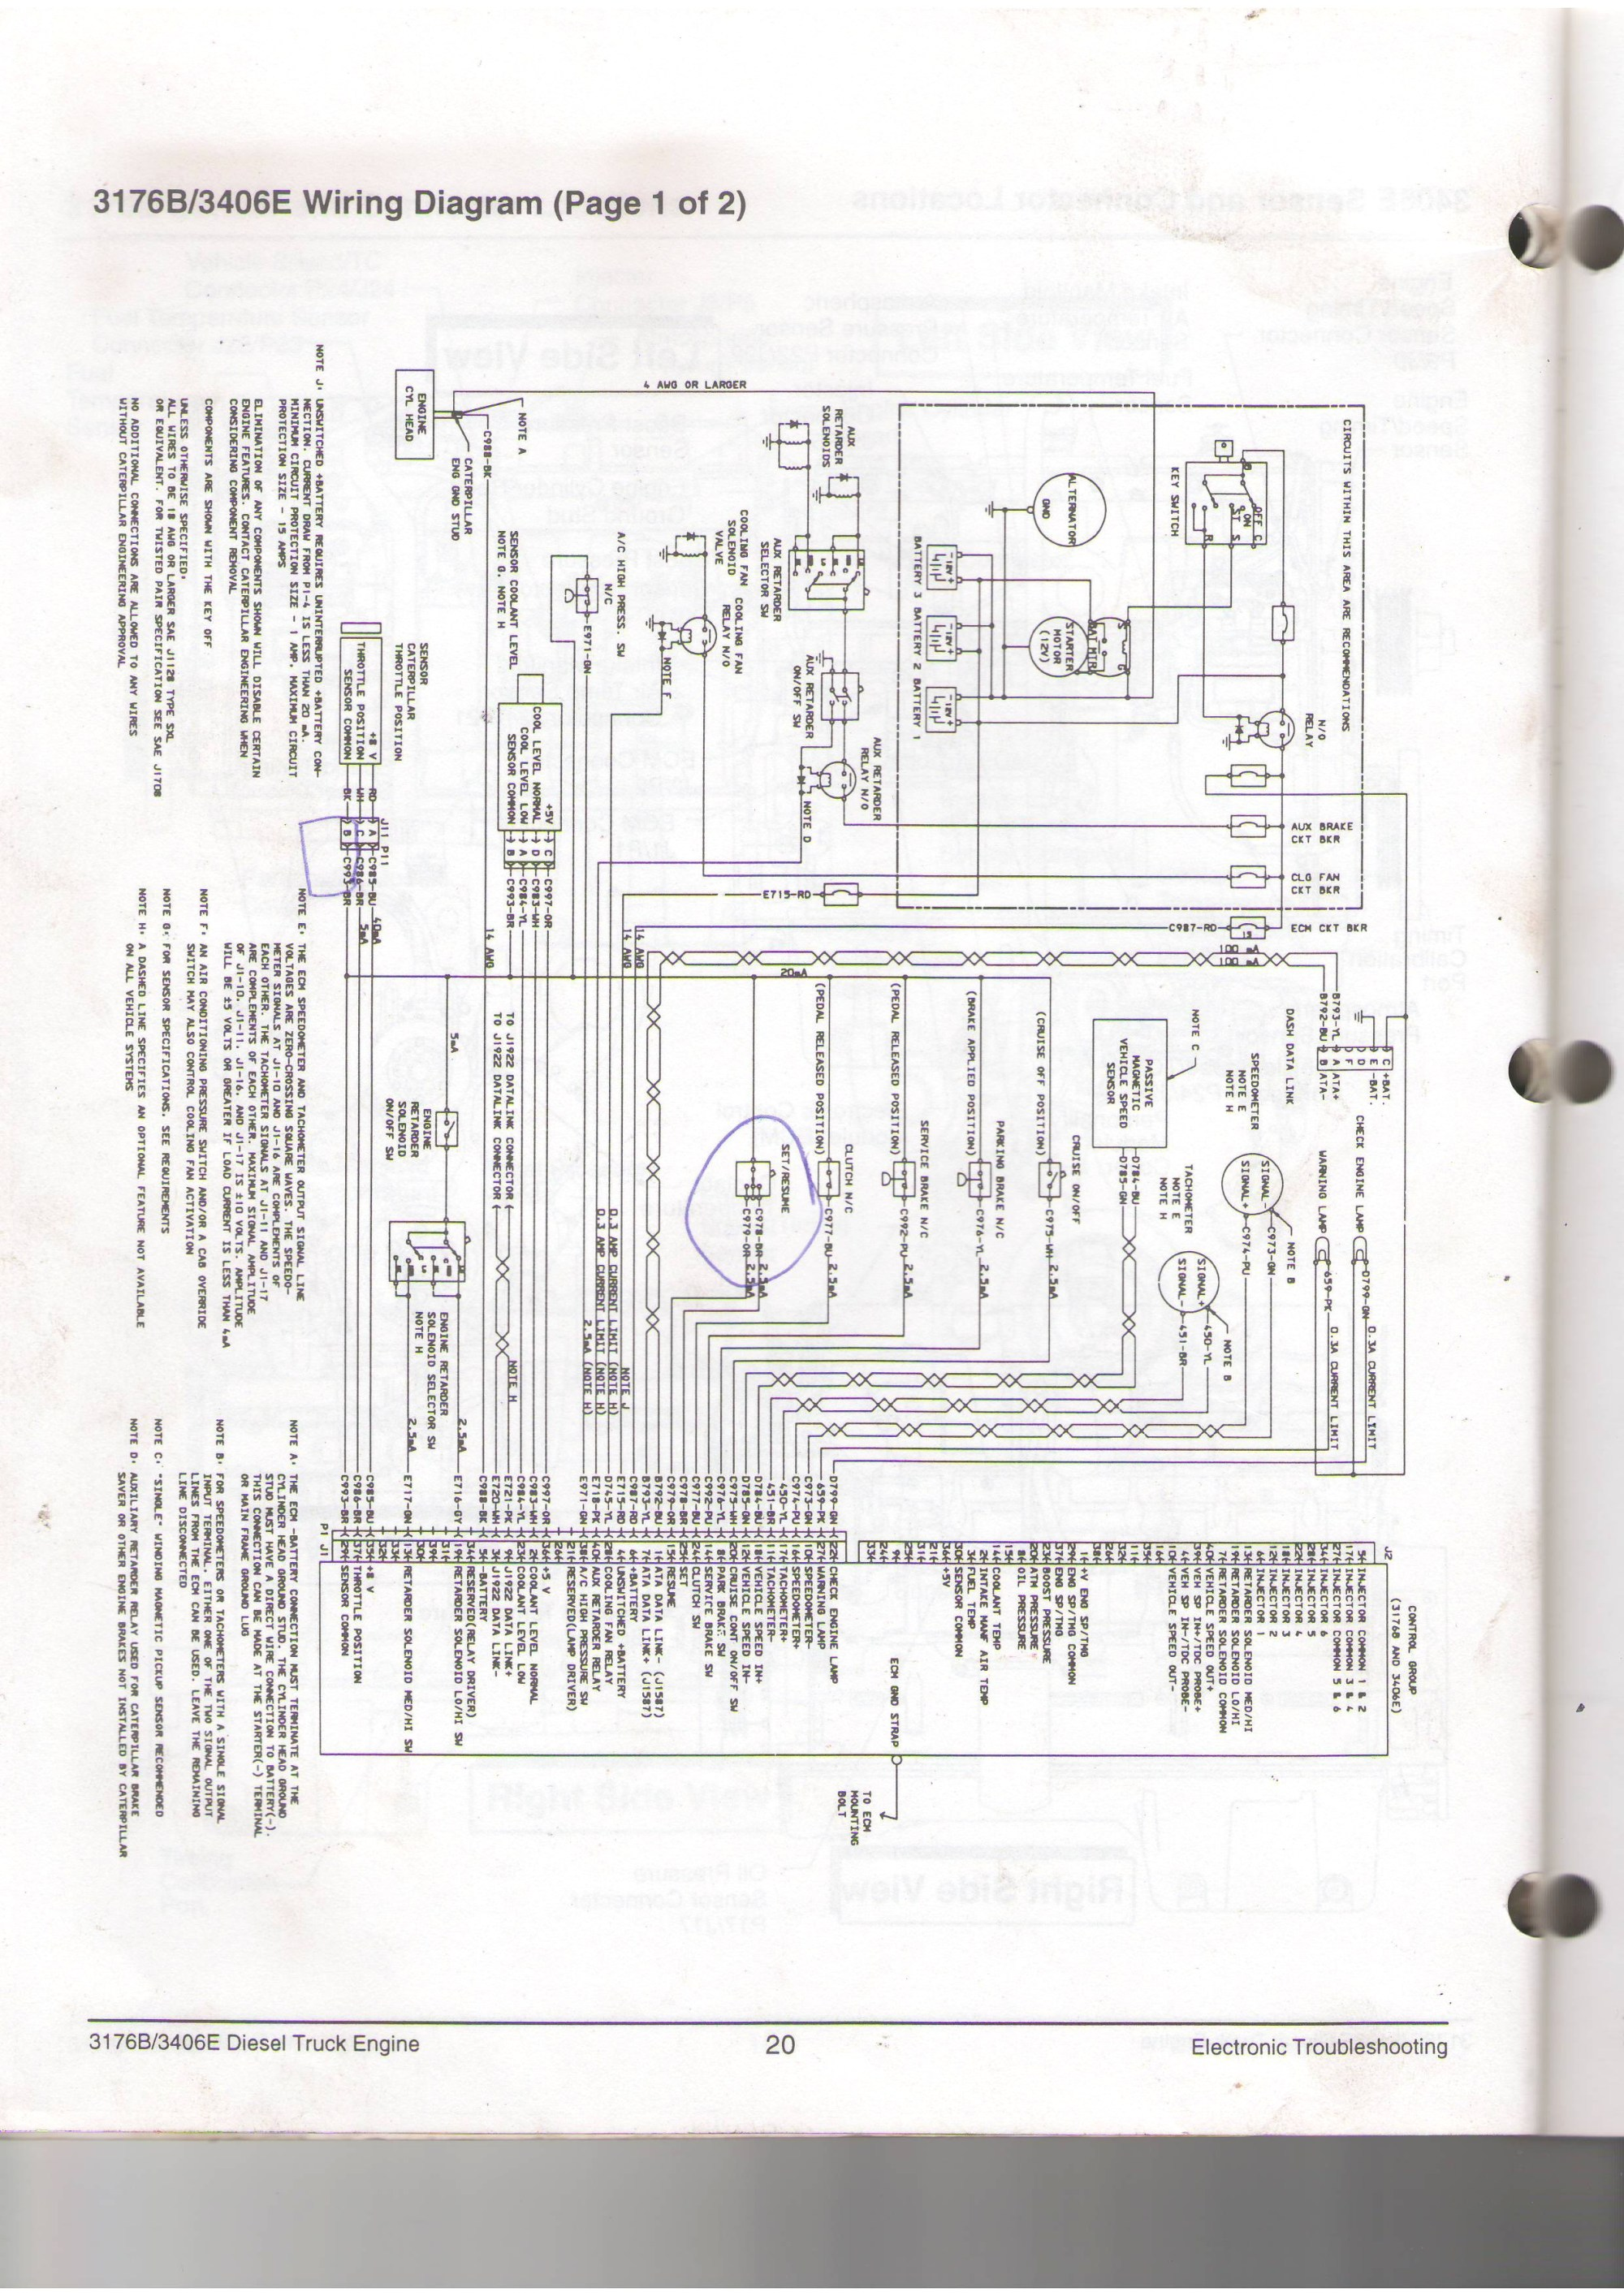 hight resolution of c13 caterpillar engine diagram wiring diagram centre c13  caterpillar engine diagram